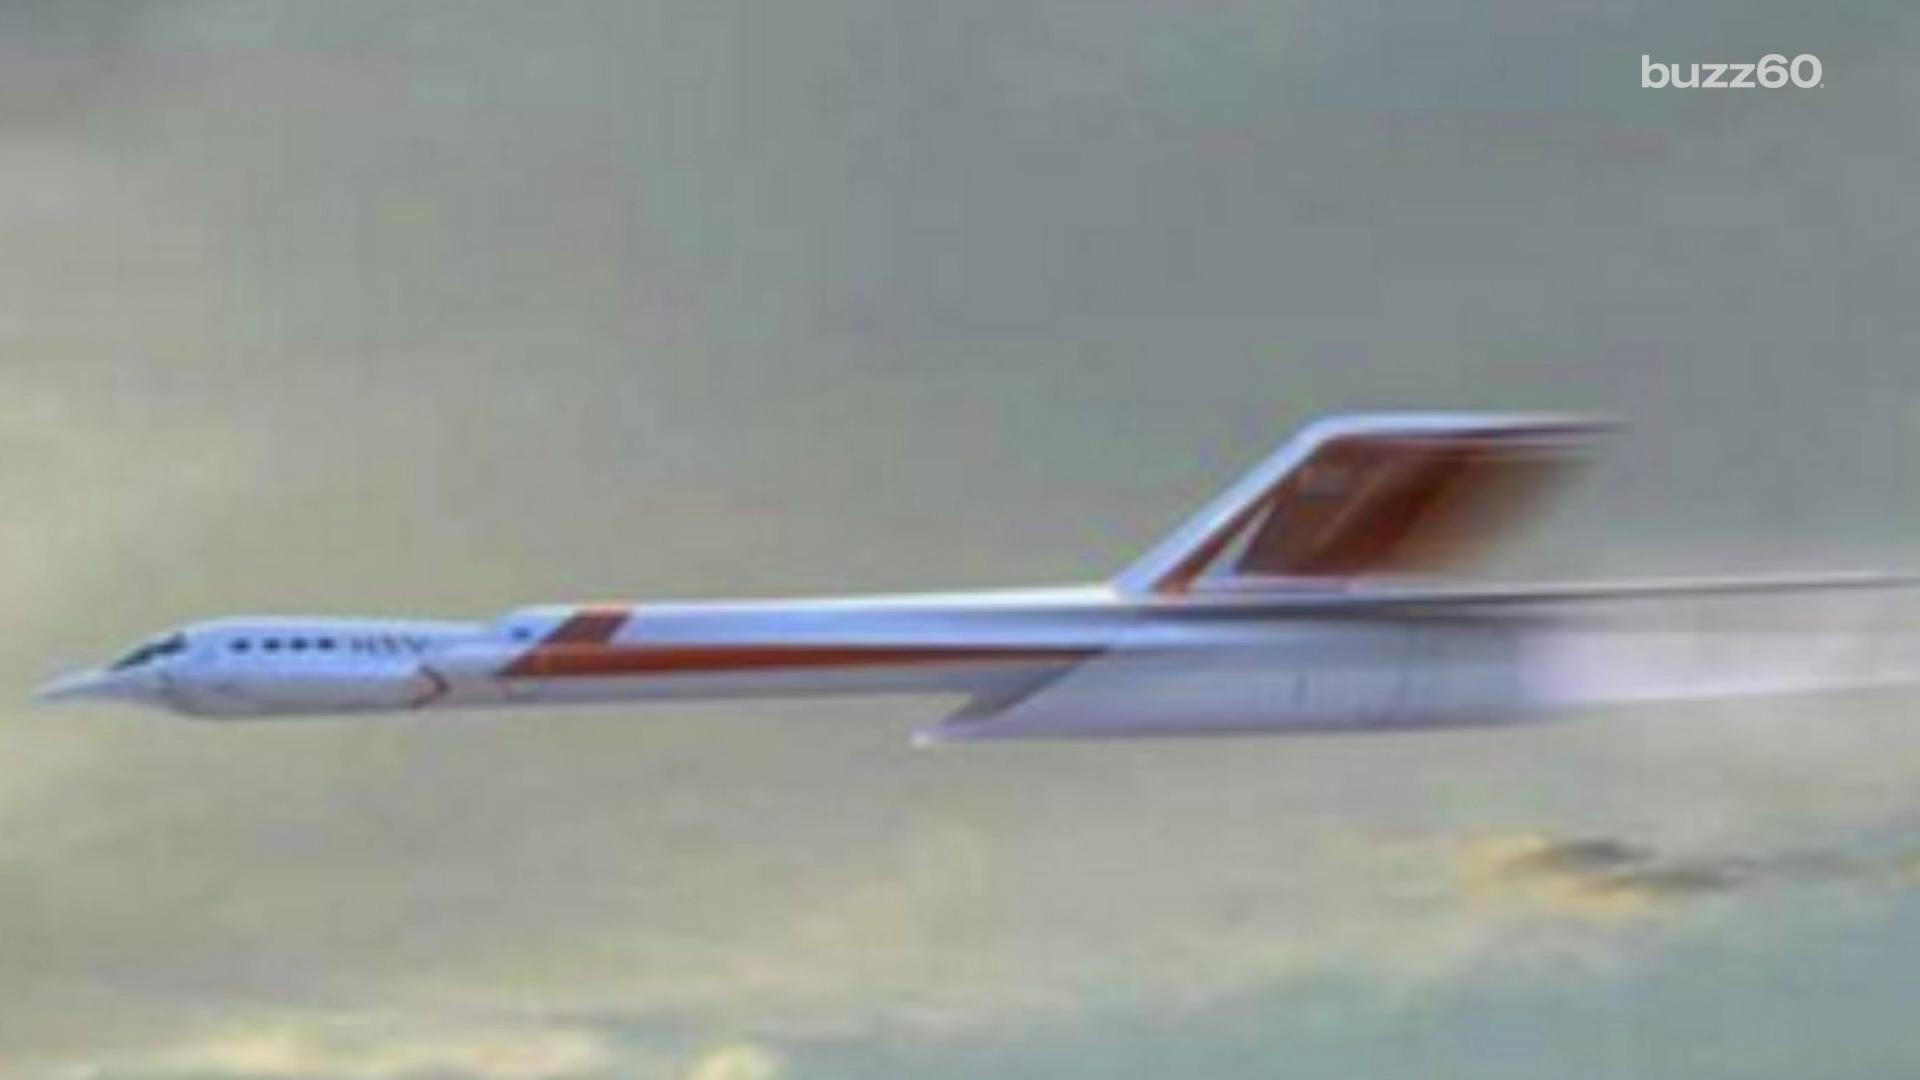 'Screamer' jet would travel from NYC to London in 30 minutes